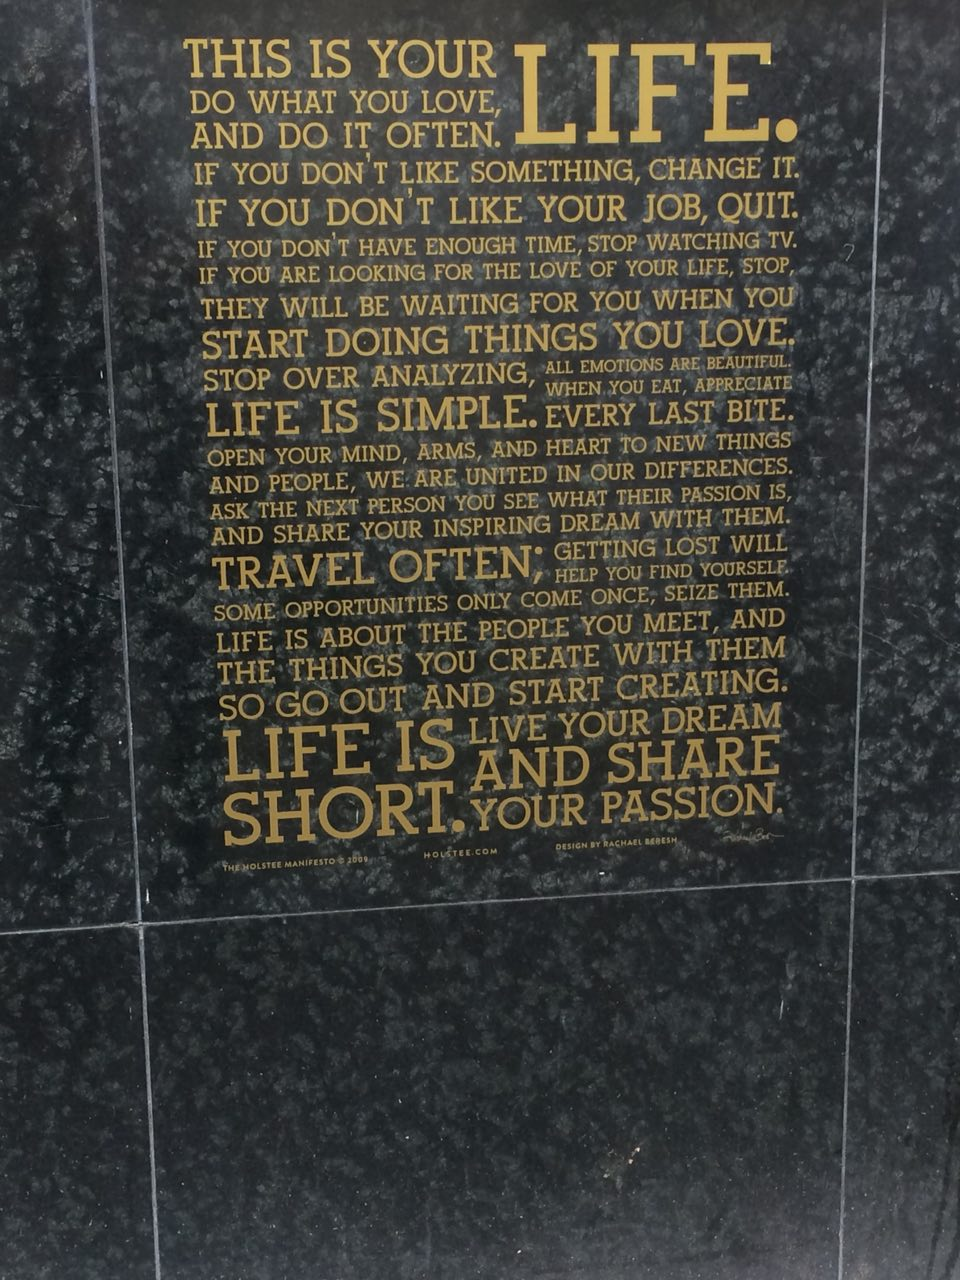 [Image] This is your life. Do what you love and do it often. If you dont like something, change it. Open your mind. Travel often. Go out and start creating. Live your dream and share your passion.